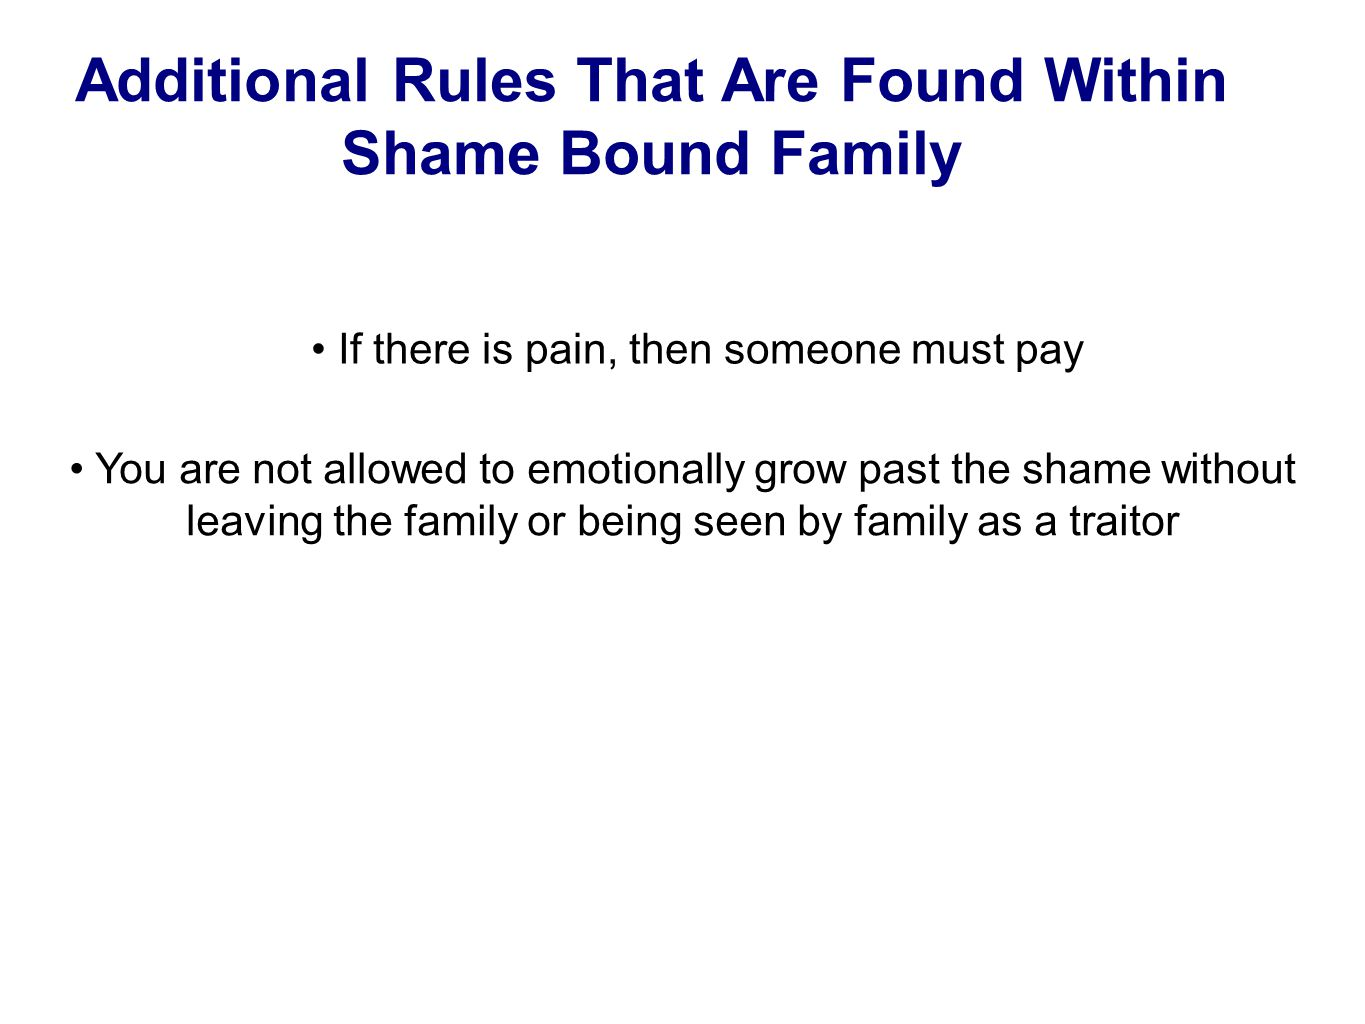 Additional Rules That Are Found Within Shame Bound Family If there is pain, then someone must pay You are not allowed to emotionally grow past the shame without leaving the family or being seen by family as a traitor